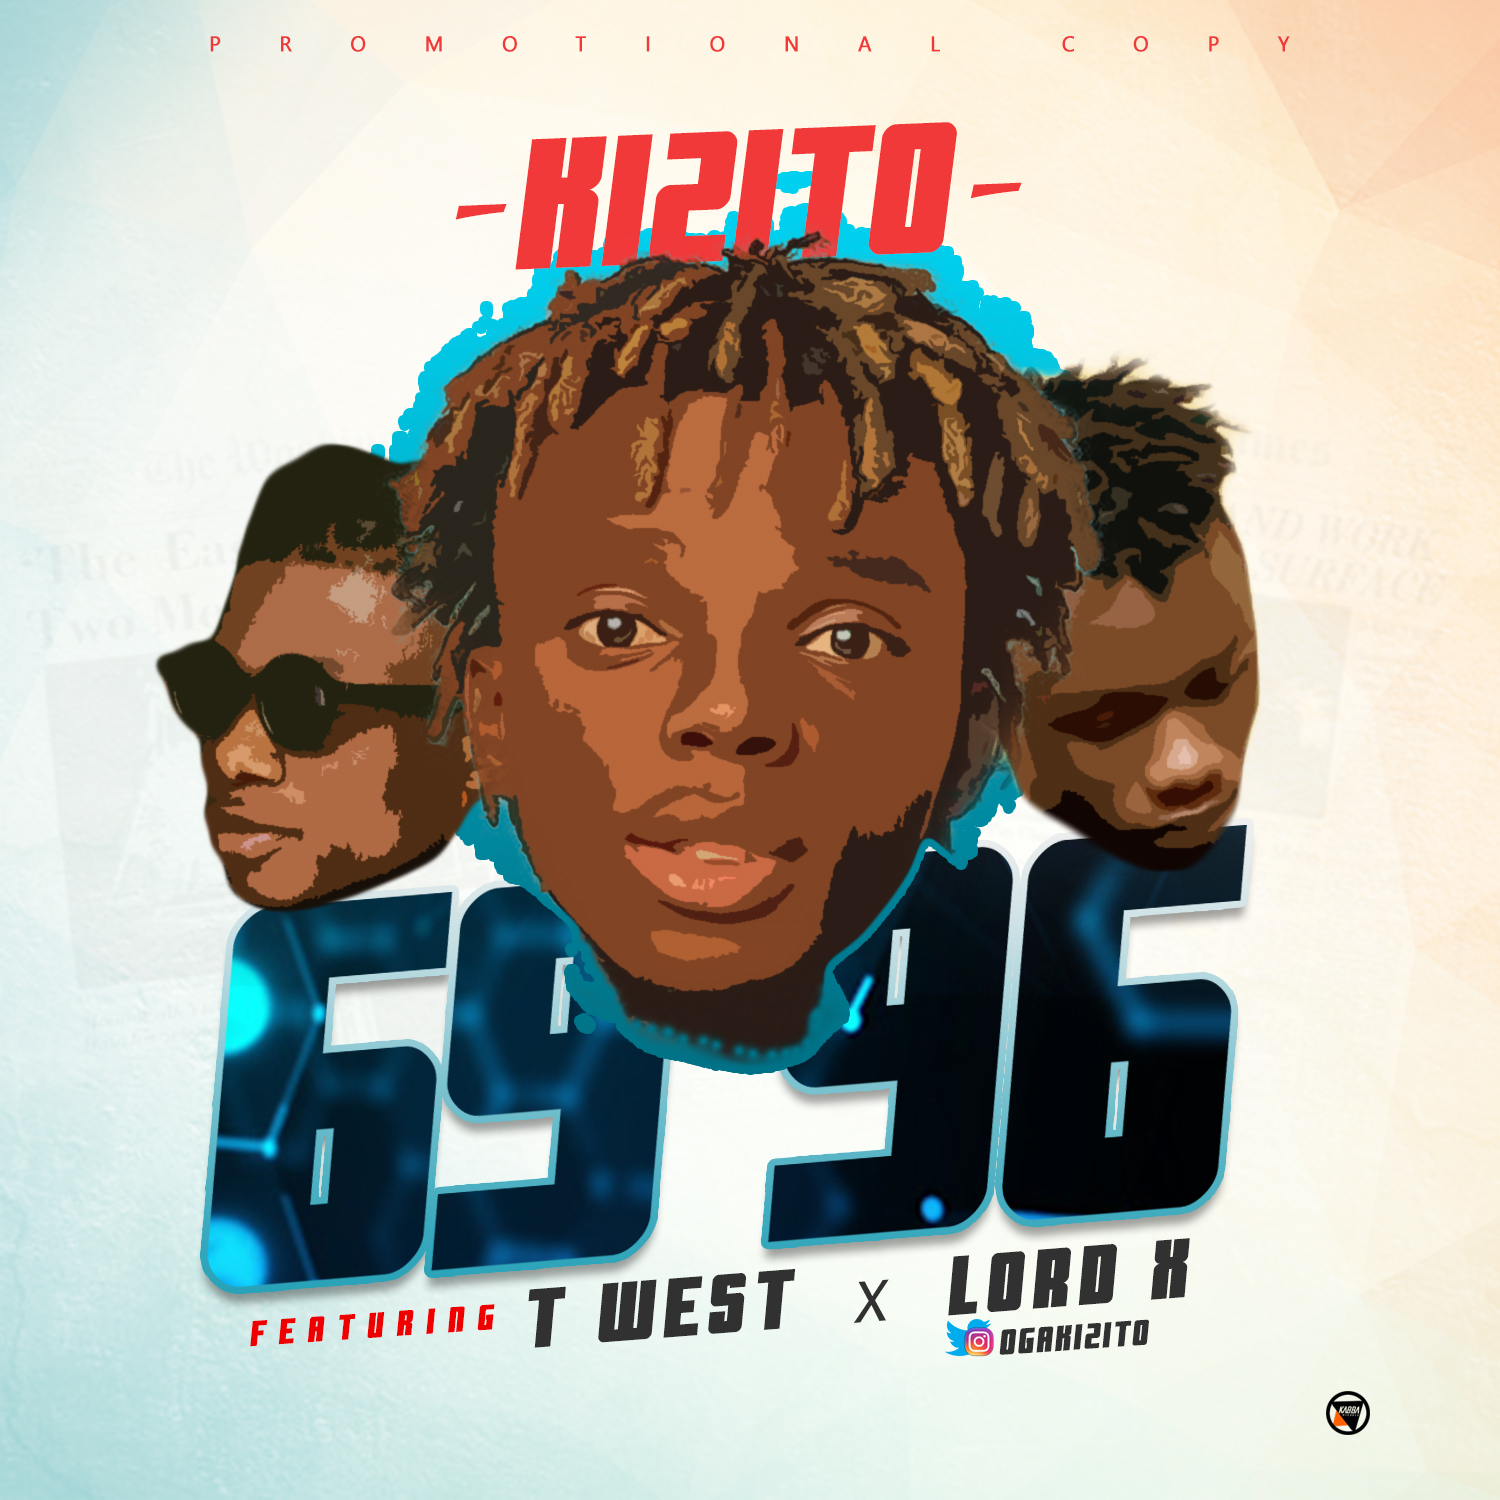 Download Mp3 Kizito - 69 96 ft T west and Lord x